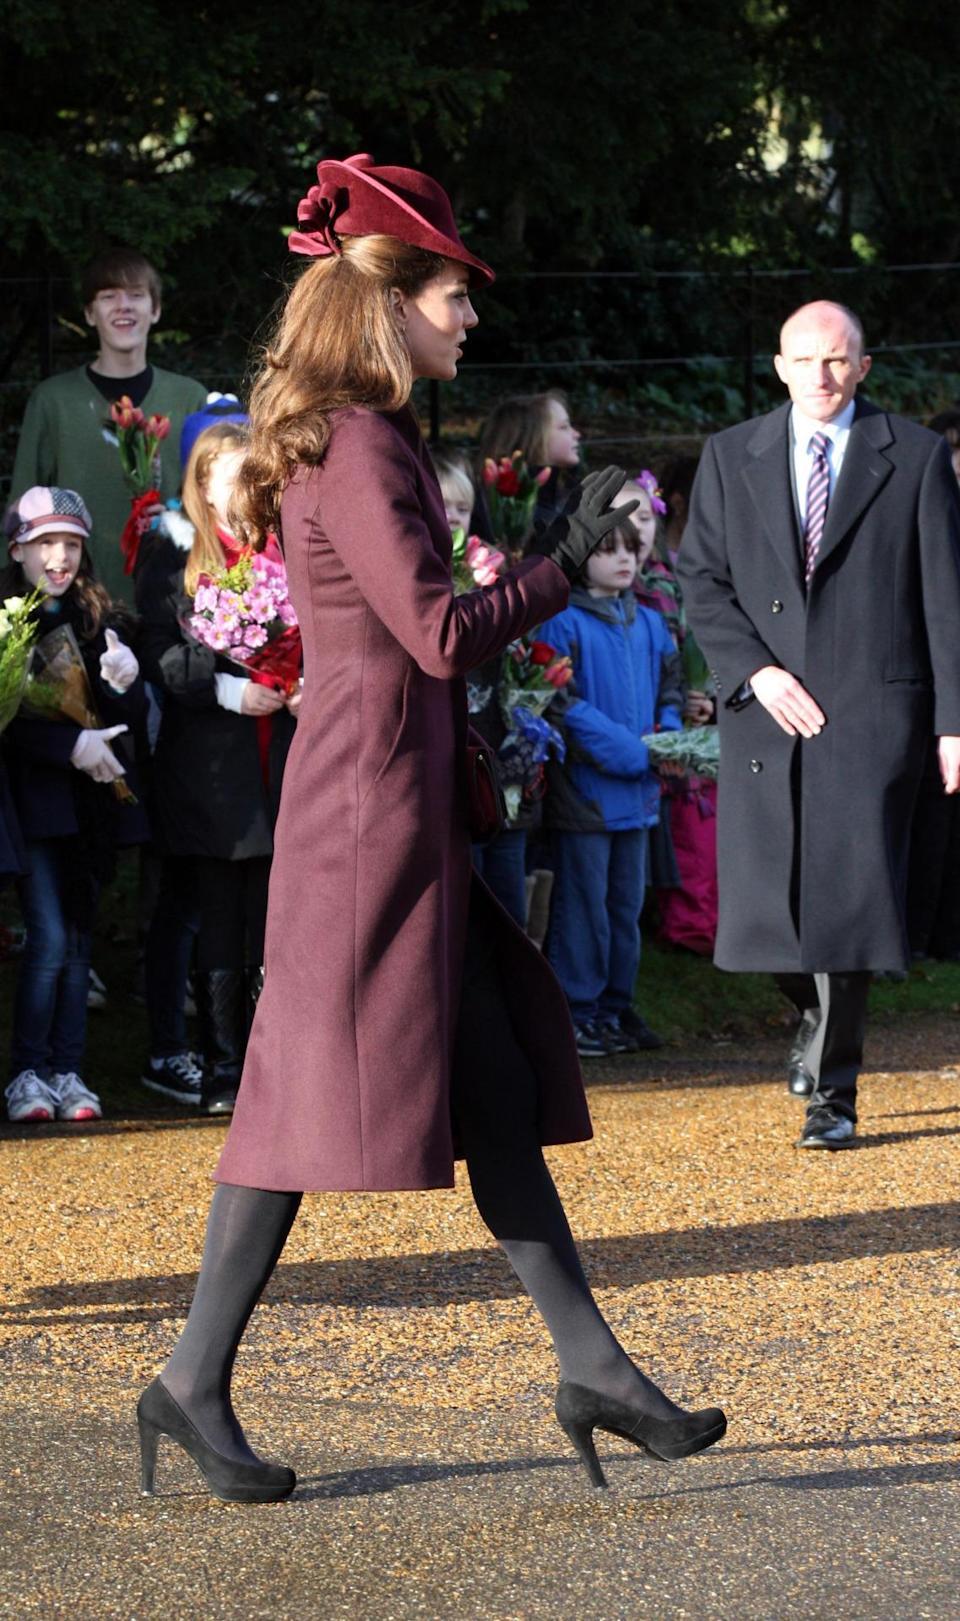 <p>The Duchess wore an aubergine coat made by an independent dressmaker for the Christmas Day service. She paired the look with a matching trilby created by Jane Corbett and black suede heels by Mascaro. </p><p><i>[Photo: PA]</i></p>